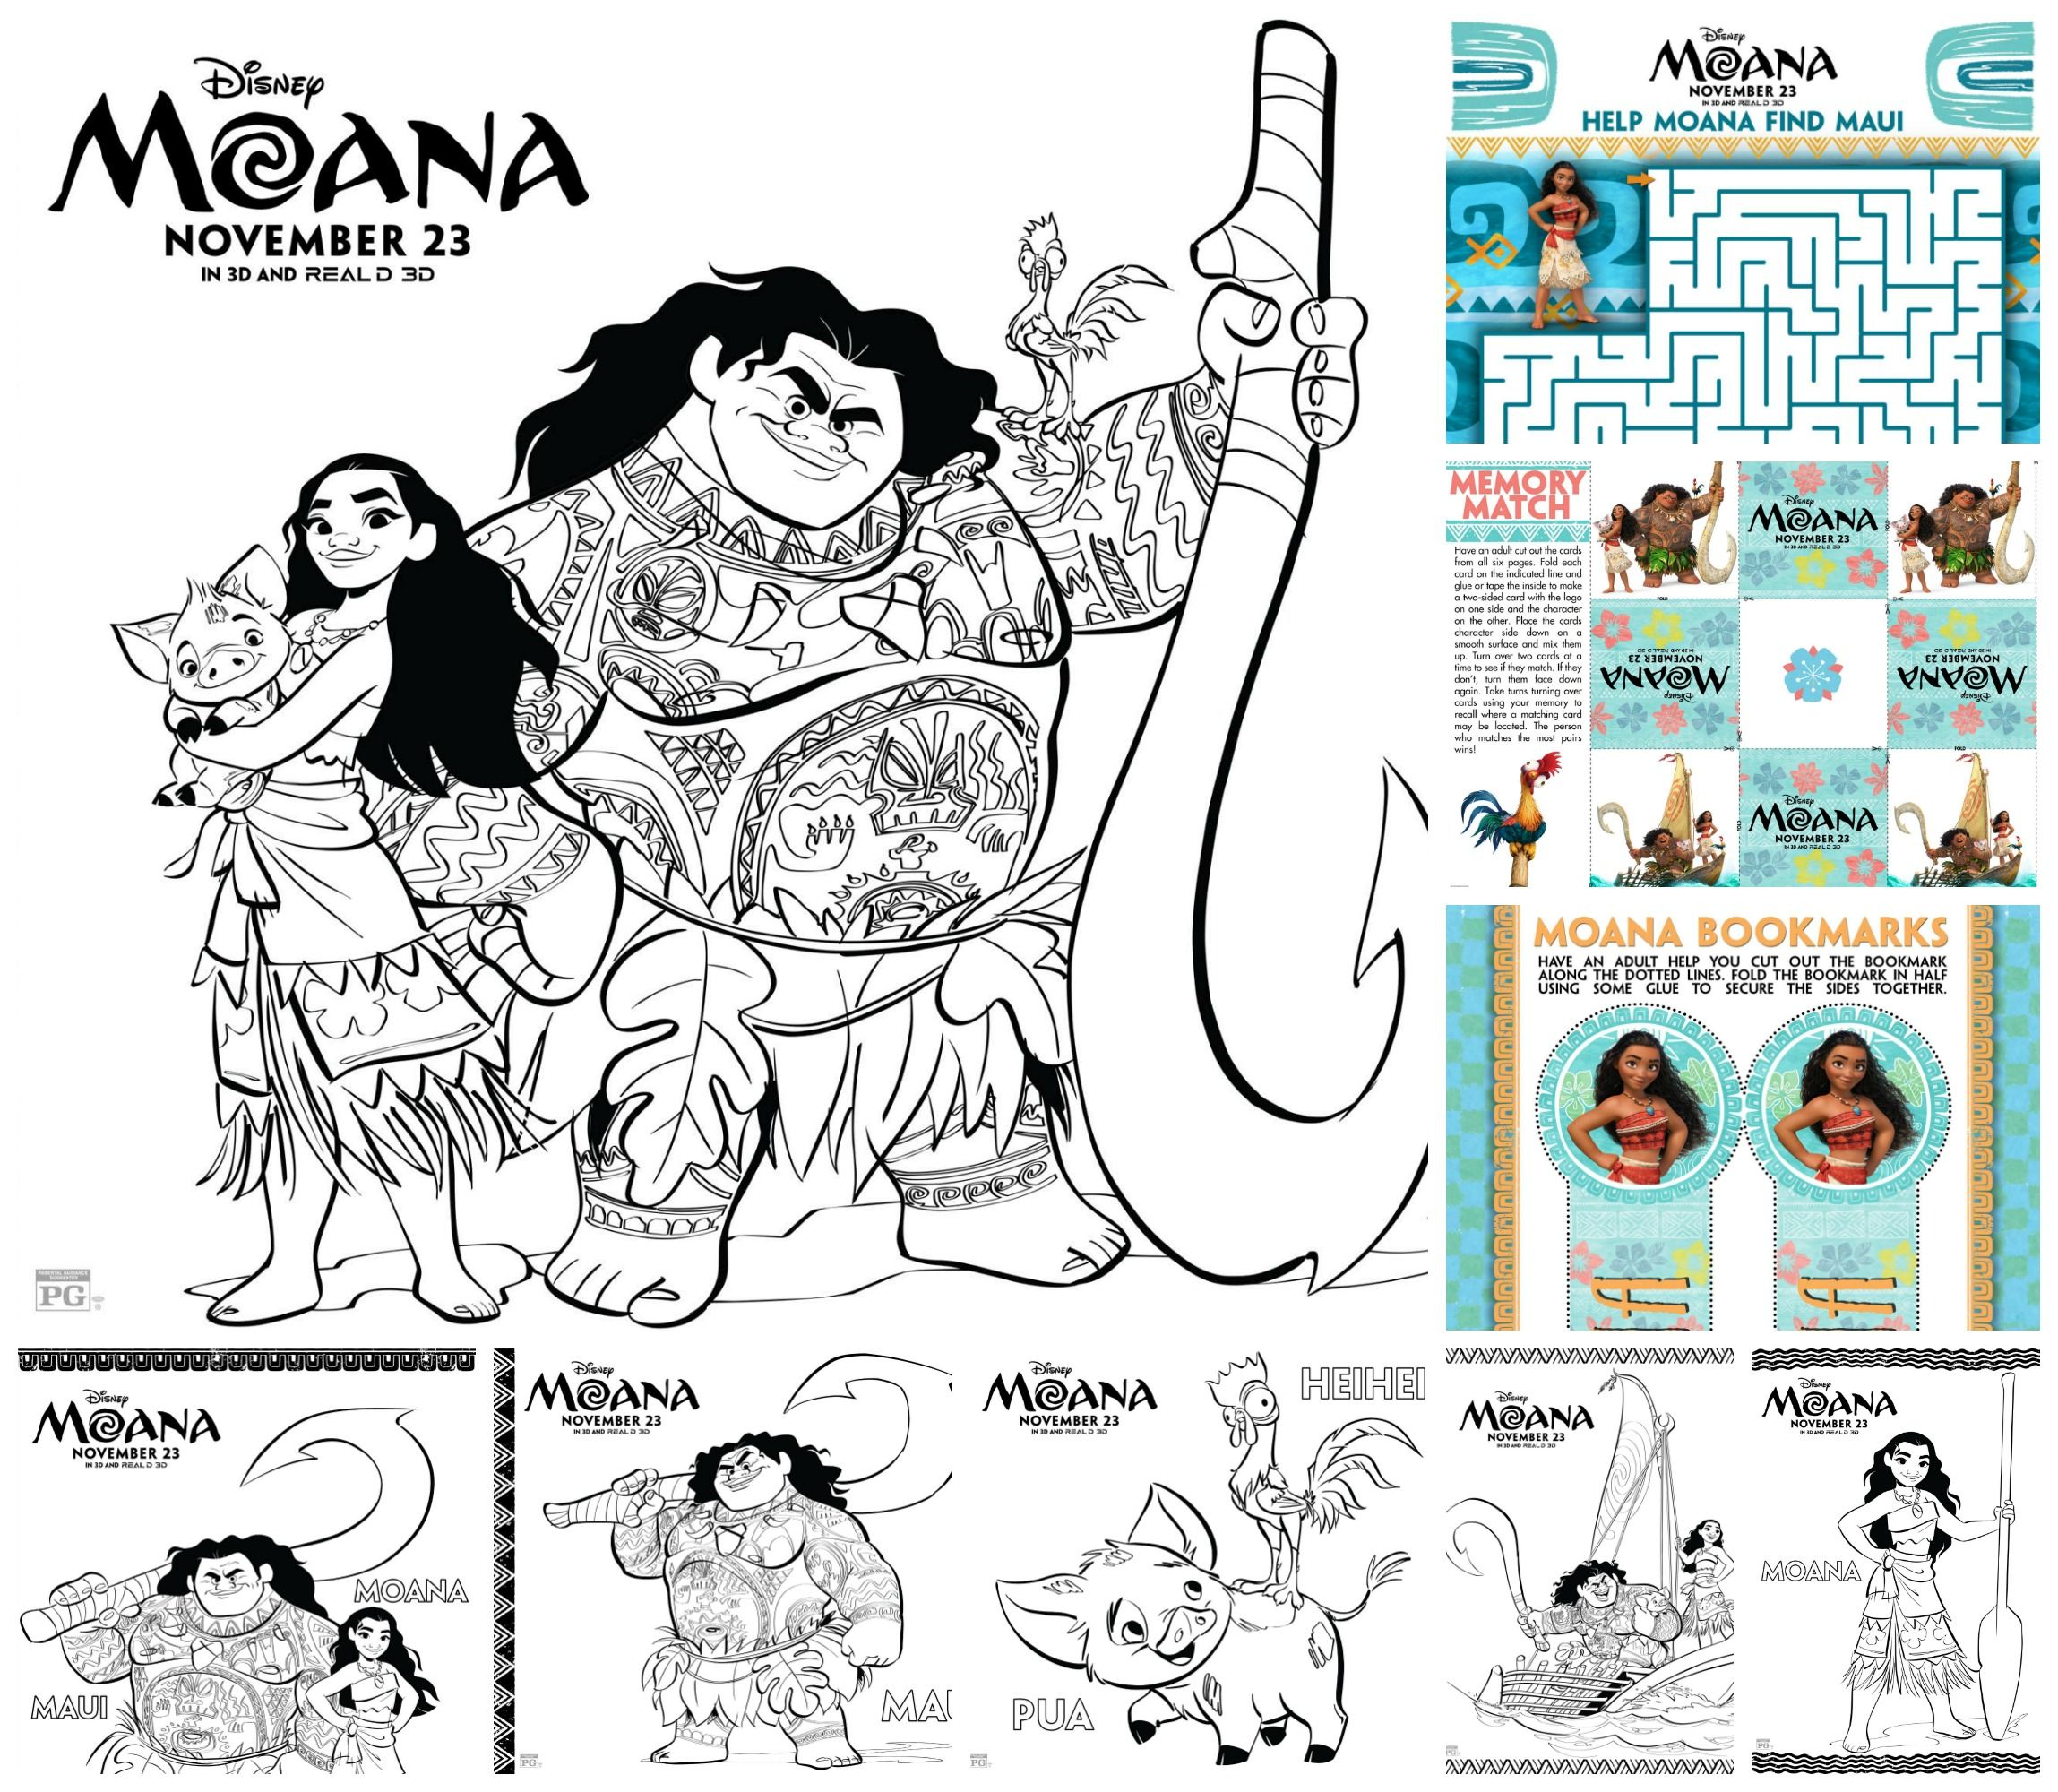 moana printable activities including coloring pages mazes and